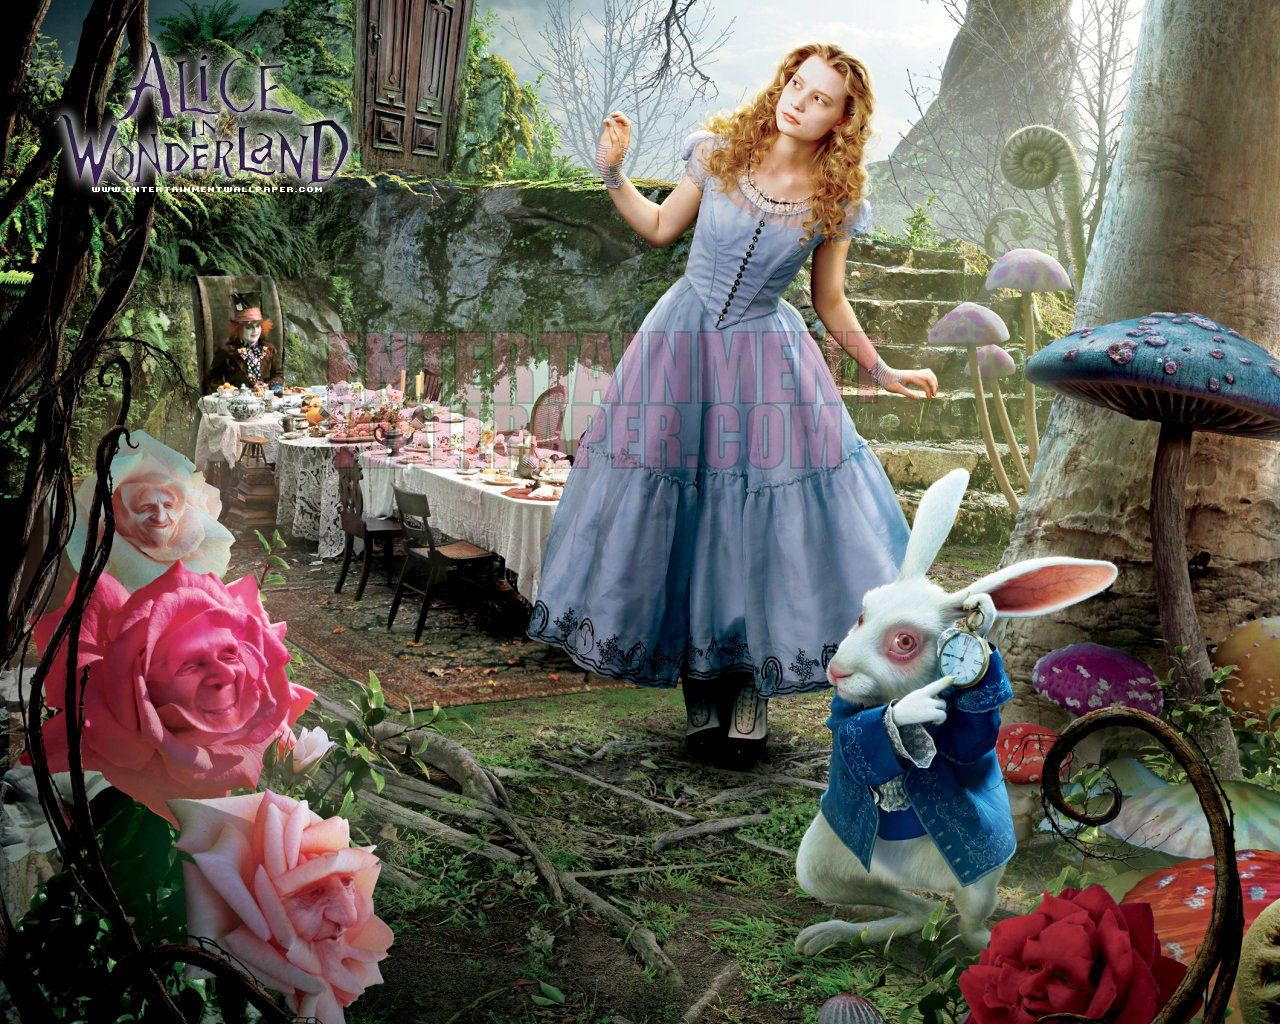 the maturation of alice in wonderland The characters in wonderland continually ask alice who she is the underlying messages in alice in wonderland are about personal growth and development.